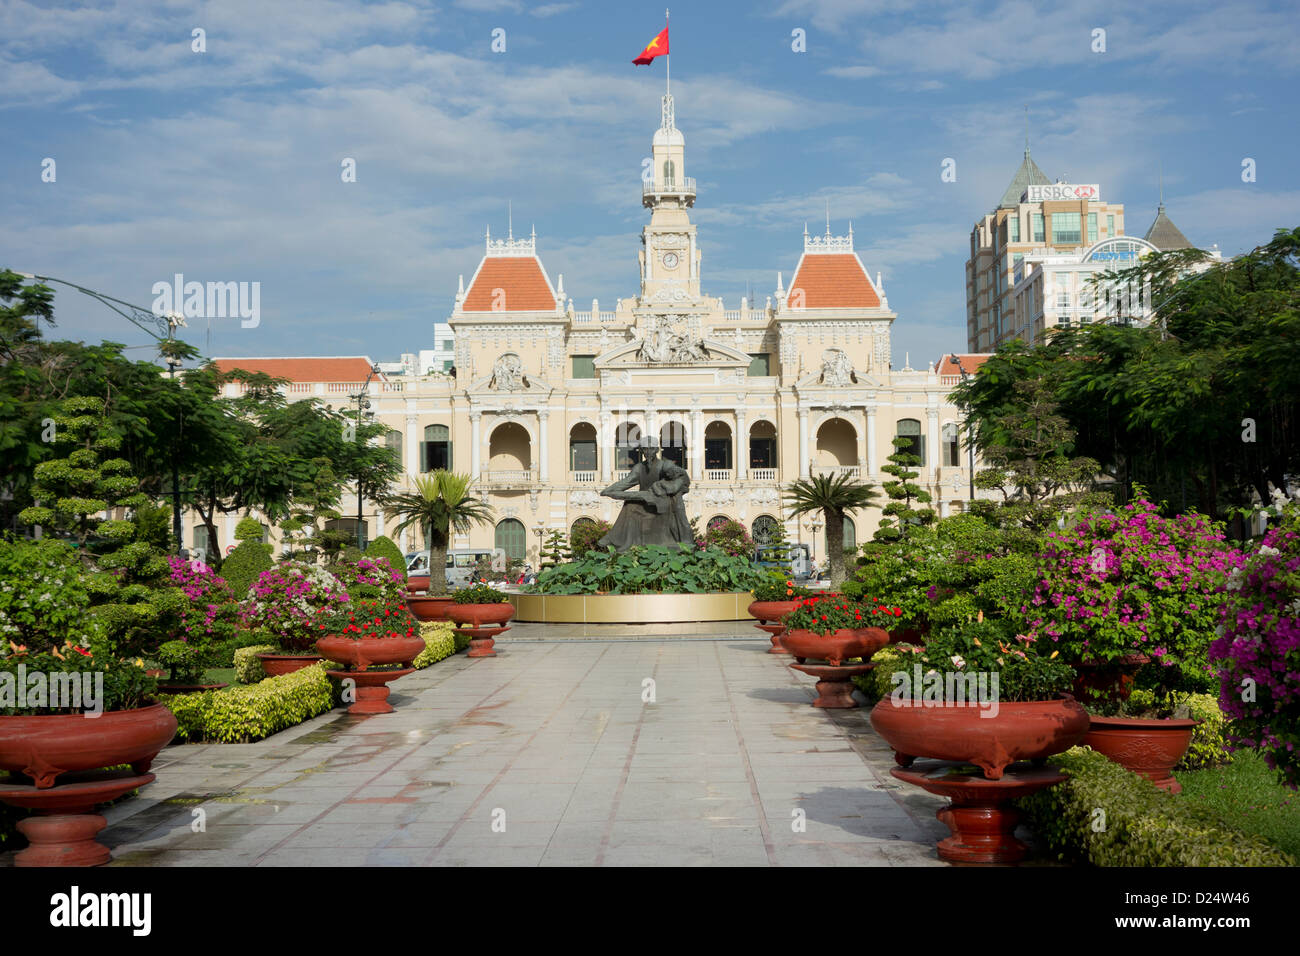 City Hall; Ho Chi Minh City; Vietnam - Stock Image